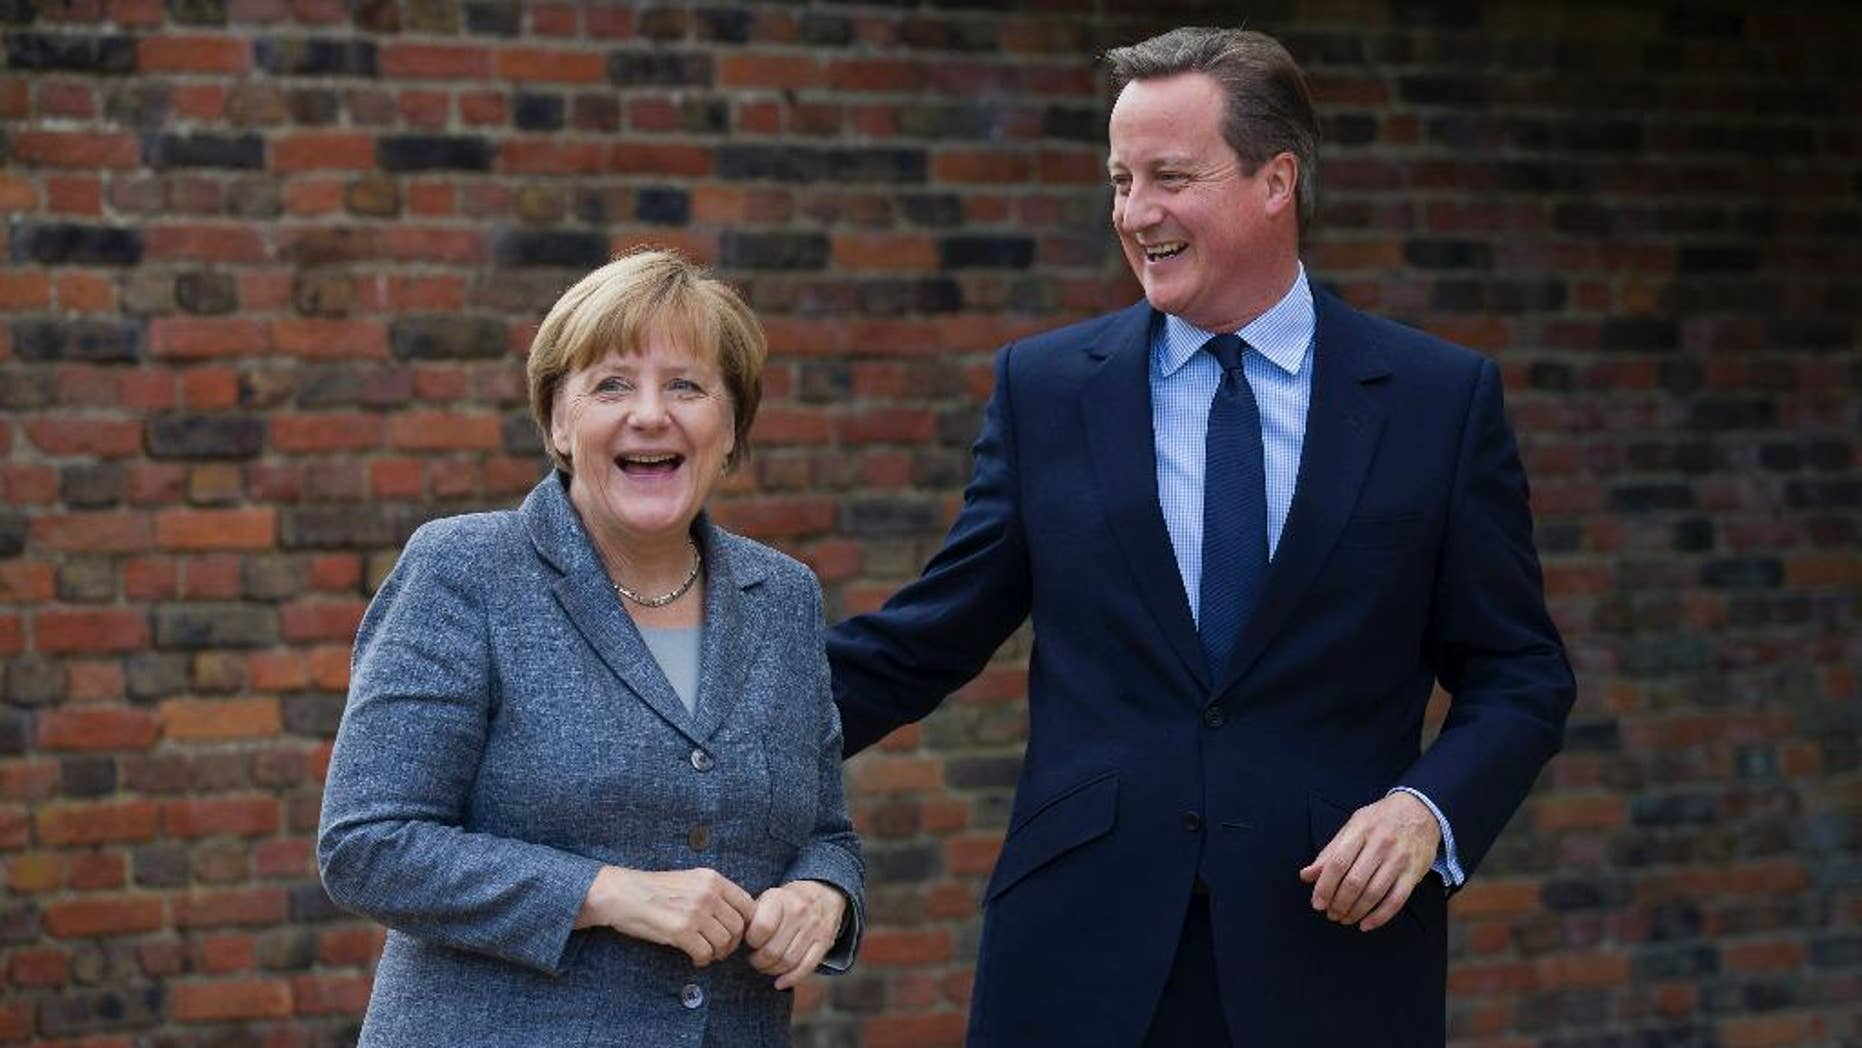 British Prime Minister David Cameron smiles as he talks with German Chancellor Angela Merkel during their meeting at Chequers, the prime minister's official country residence, near Ellesborough, northwest of London, Friday Oct. 9, 2015. (Justin Tallis/Pool via AP)